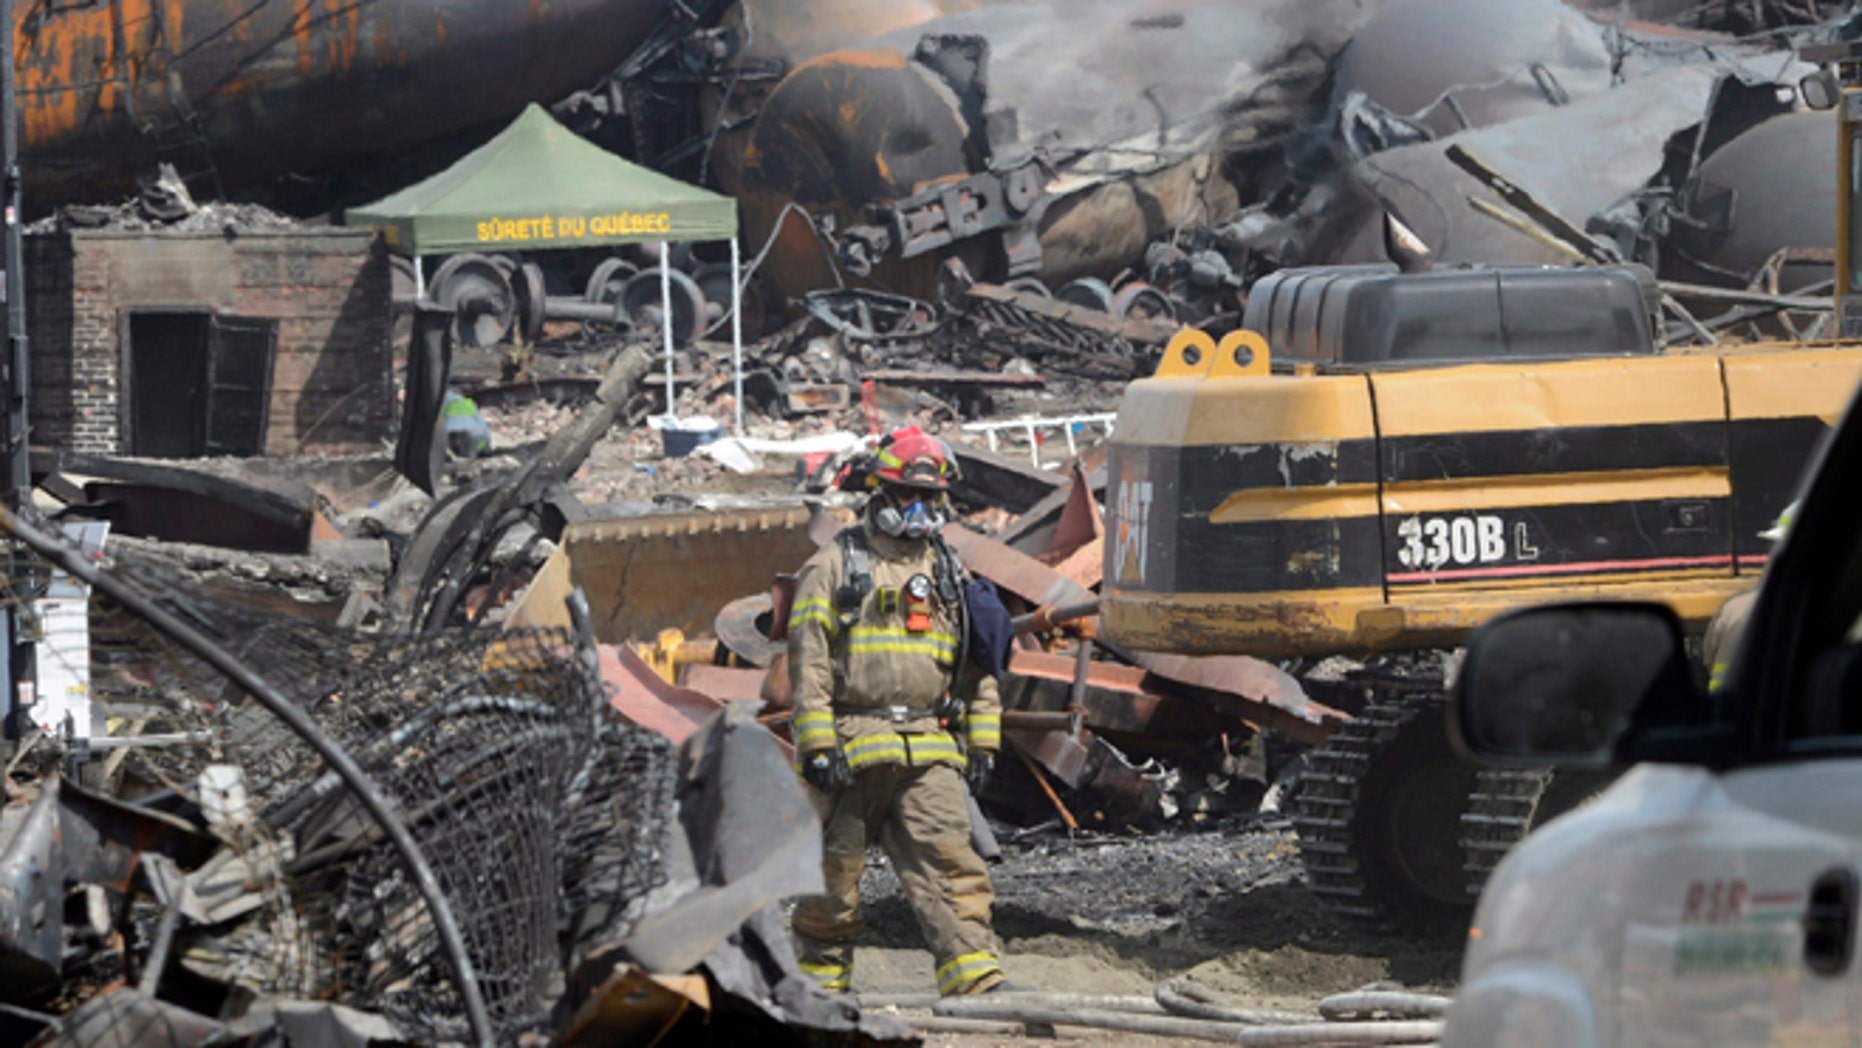 July 6, 2013: This file photo shows a worker, wearing protective gear moving though the wreckage of the oil train derailment and explosion in  in Lac-Megantic, Quebec.